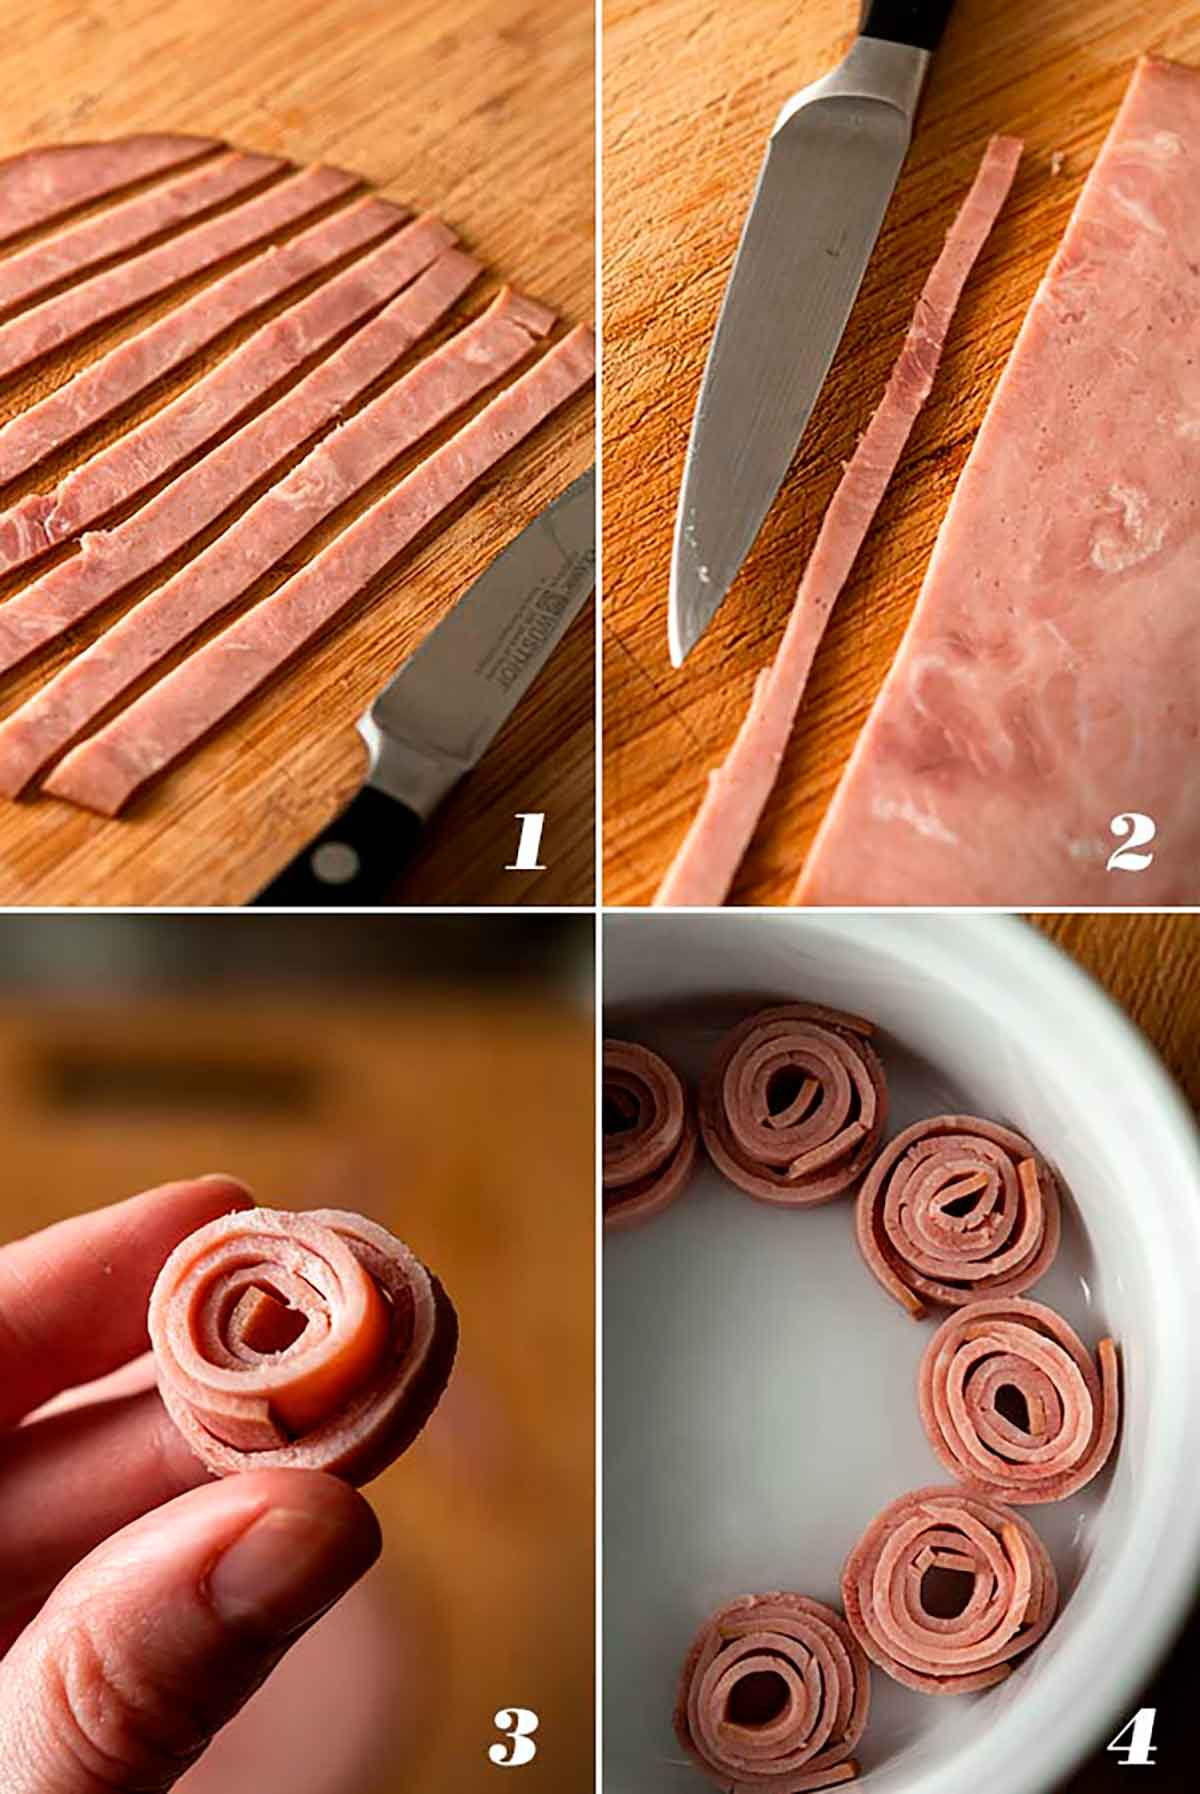 A collage of 4 numbered images showing how to make ham roses.